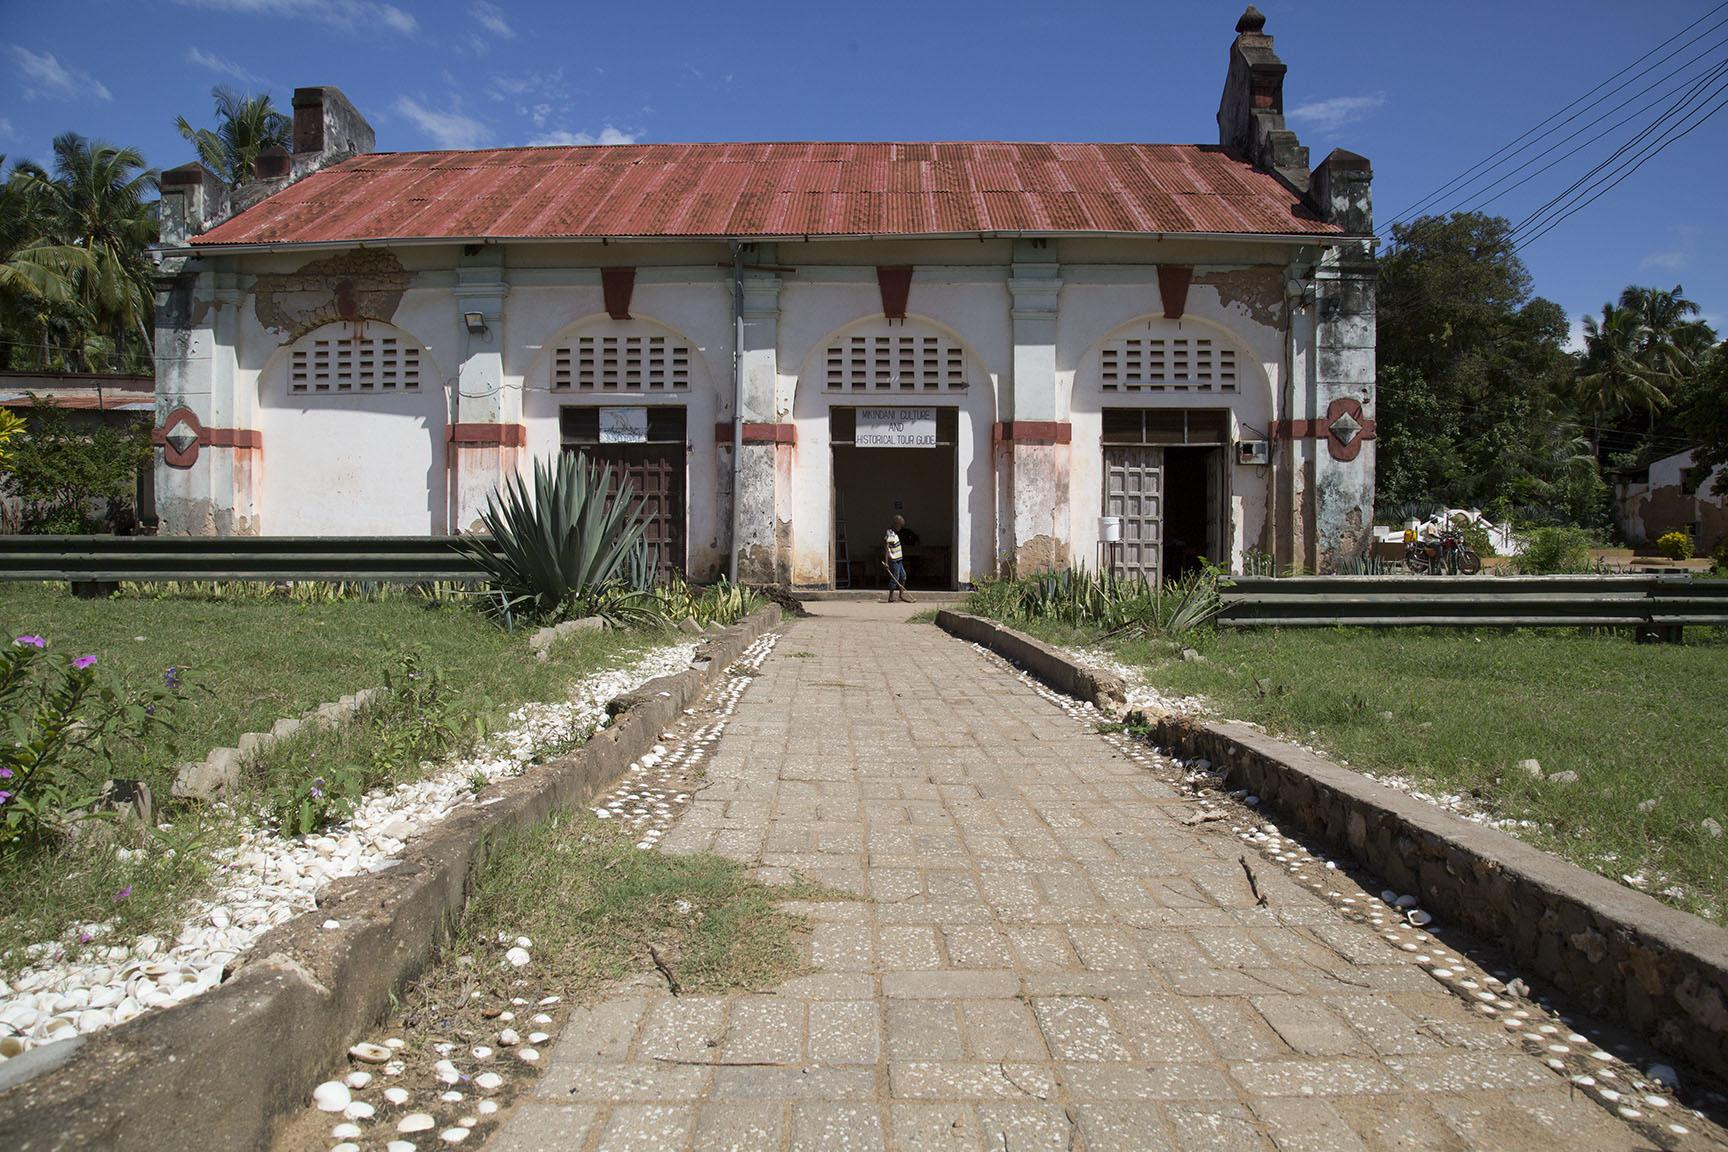 TANZANIA-ARCHITECTURE-HISTORY-FEATURE This picture taken on April 28, 2019 shows the building of the former Slave Market which is currently used for local business like restaurants, fish market and tour office in Mikindani, southern Tanzania. - Mikindani was once the centre of trade in southern Tanzania. The town was under German colonial rule trade in the late 19th century before the arrival of the British at the end of WWI. (Photo by SIMON LUYENGA/AFP)